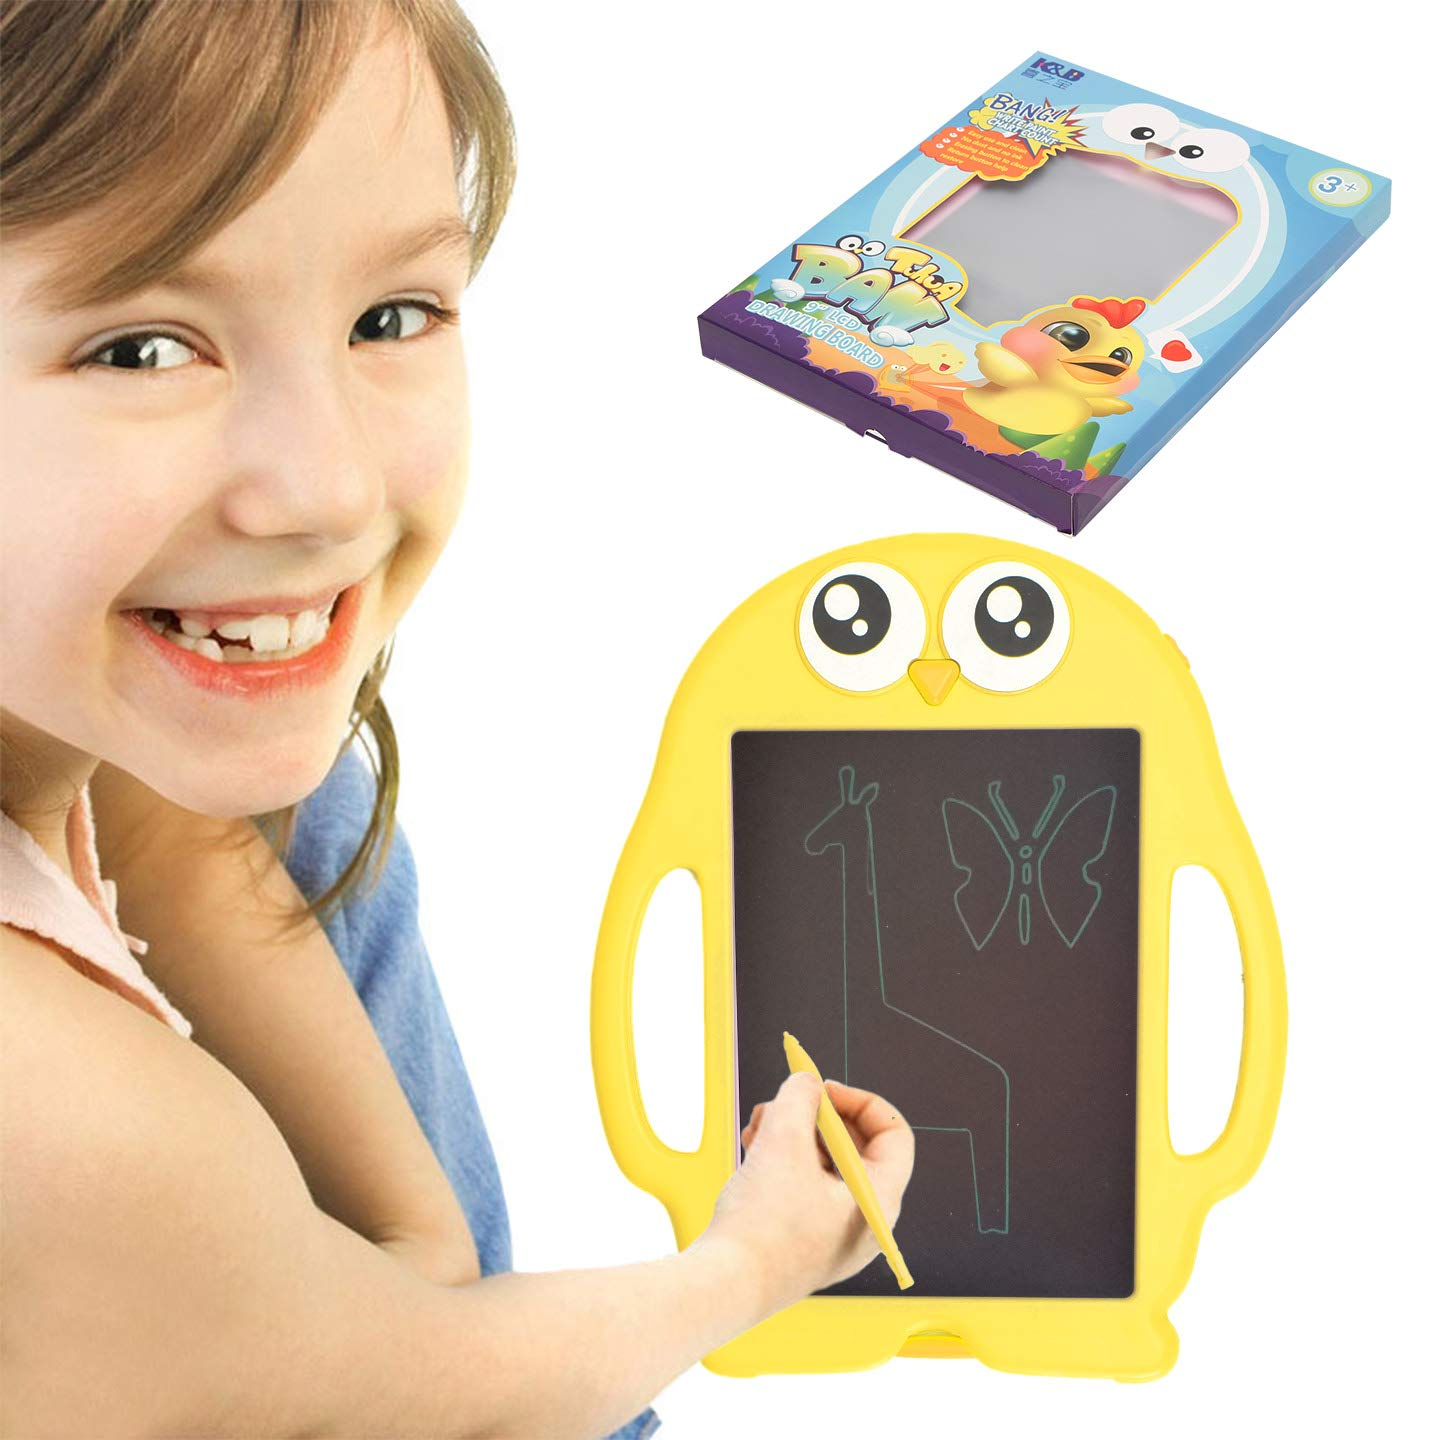 Happytime 9 Inch Portable Electronic Writing Drawing Board Gift Kids LCD Writing Drawing Tablet Board Handwriting Paper Penguin Board School Office BABY ART PARK